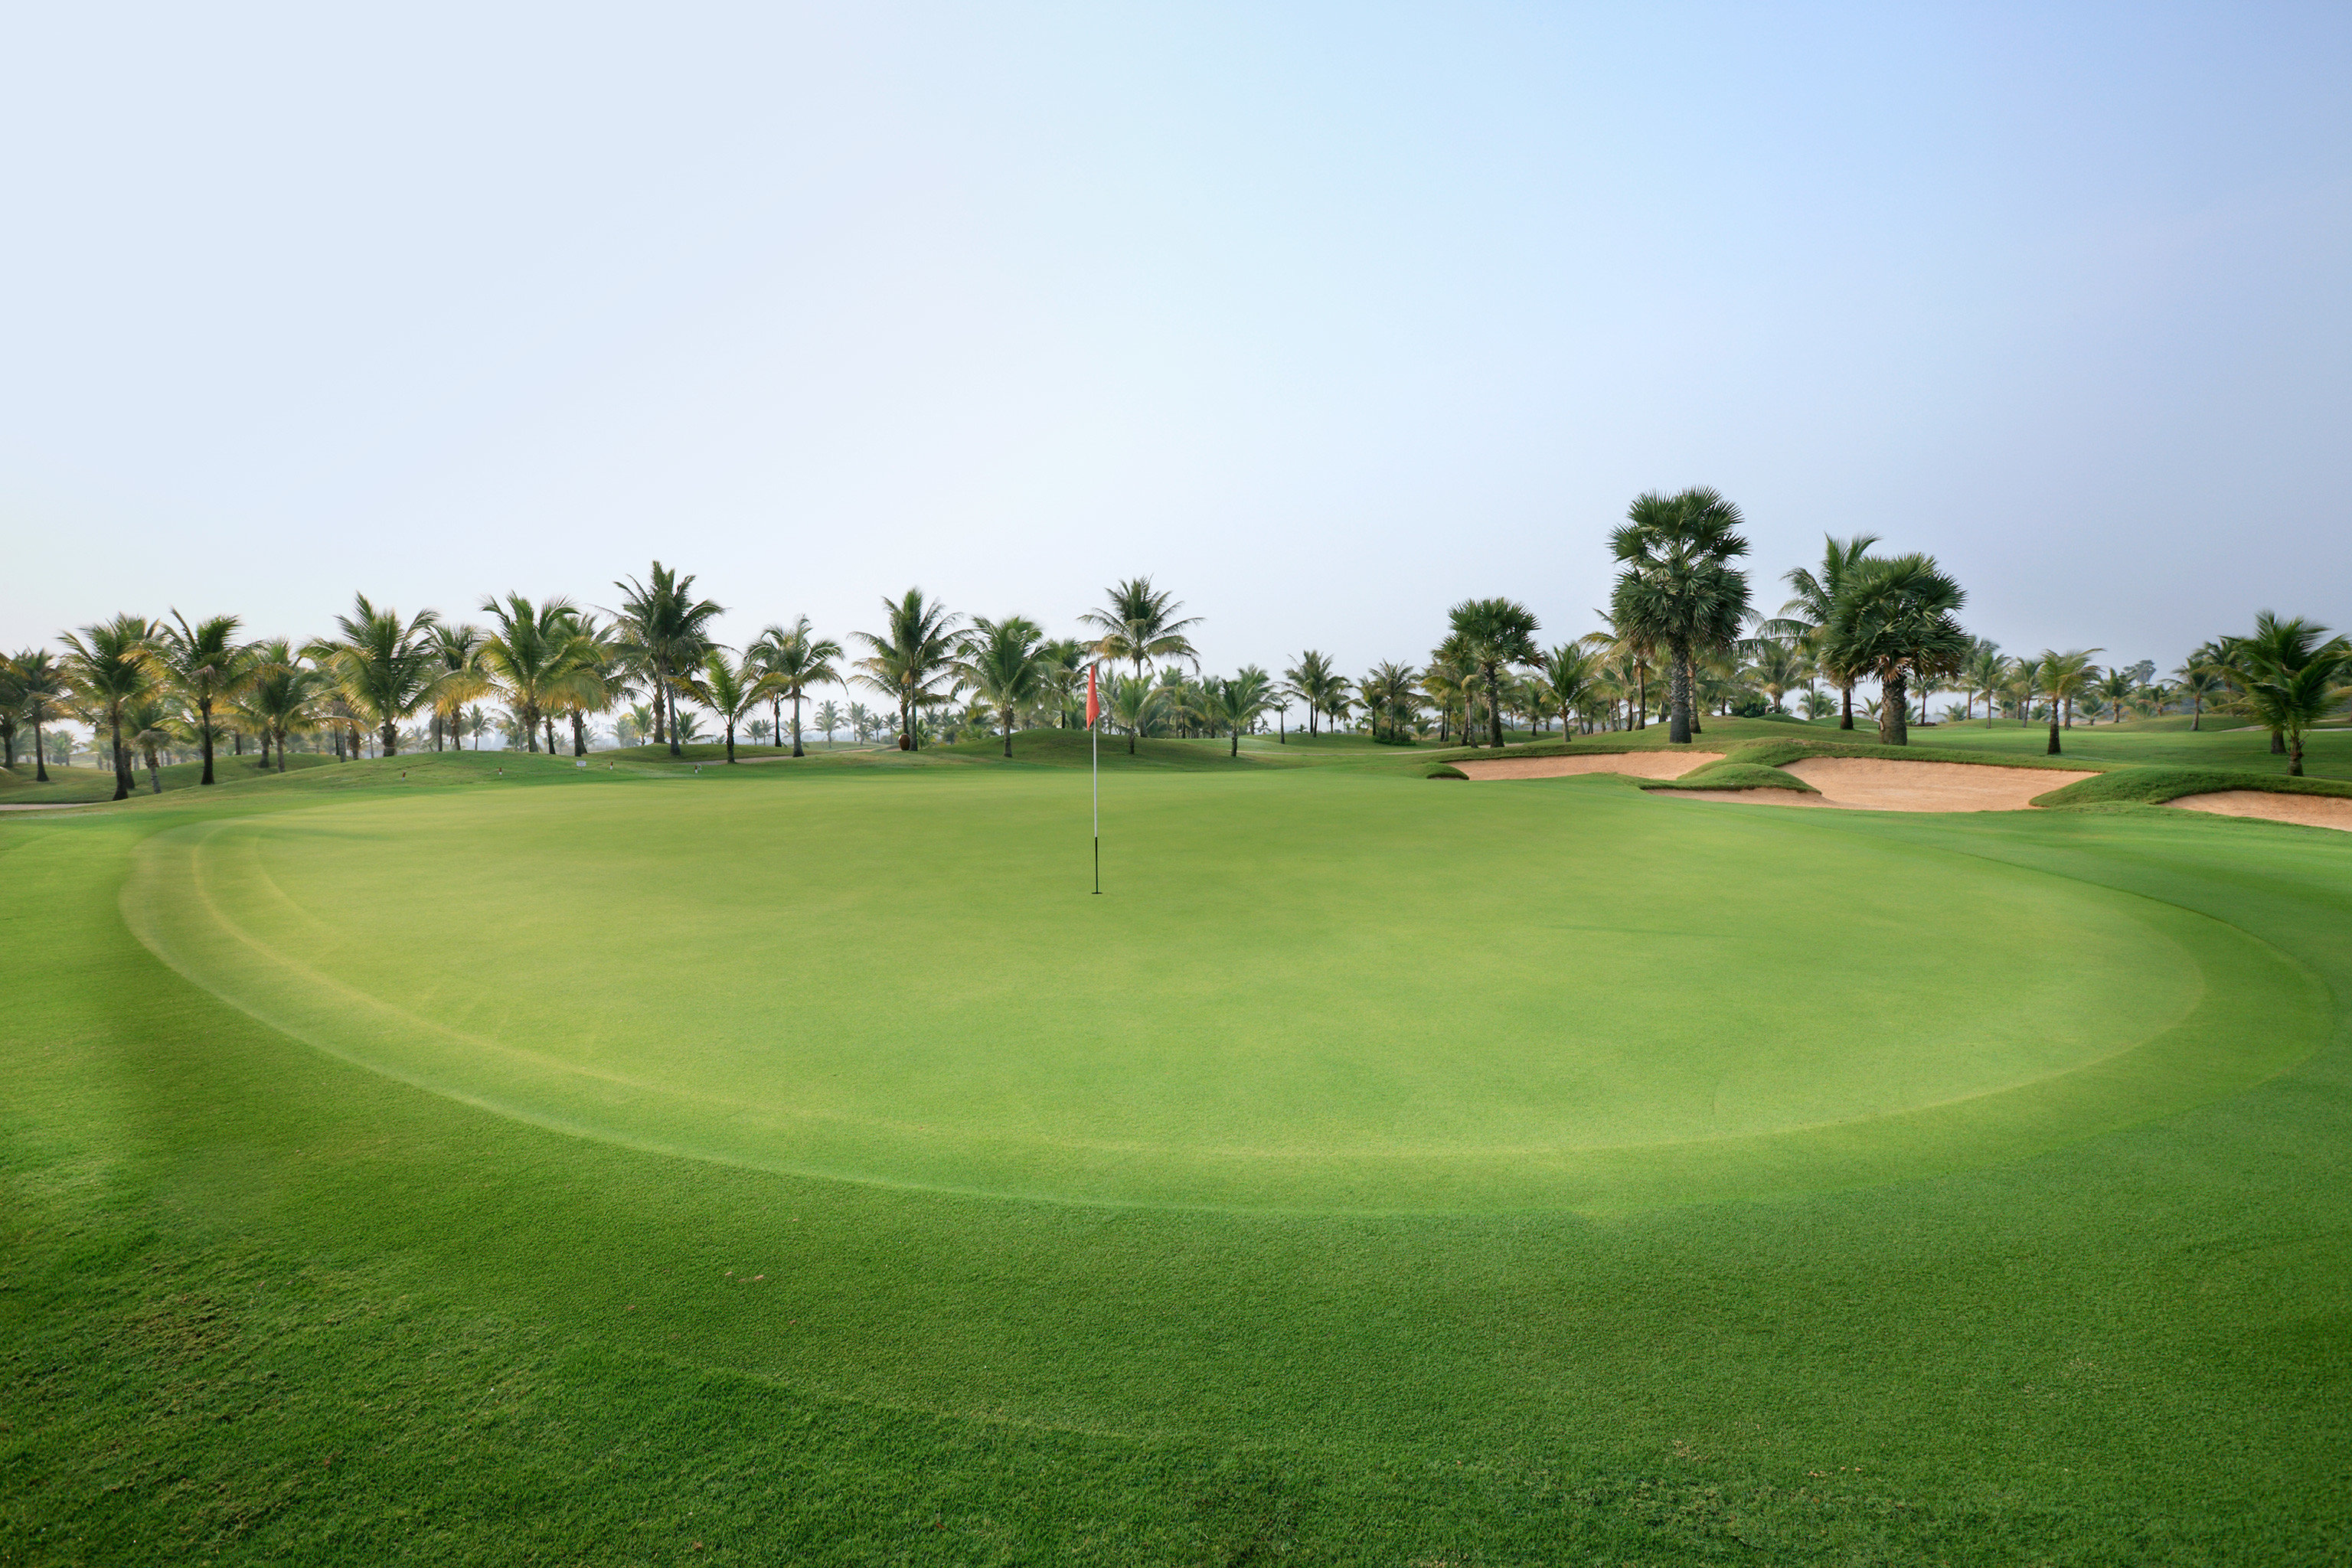 Family Fitness Golf Outdoor Activities Outdoors Play Resort Sport Wellness grass sky structure green sport venue athletic game field baseball field pitch and putt golf course lawn golf club sports grassland baseball park soccer specific stadium stadium grassy lush day